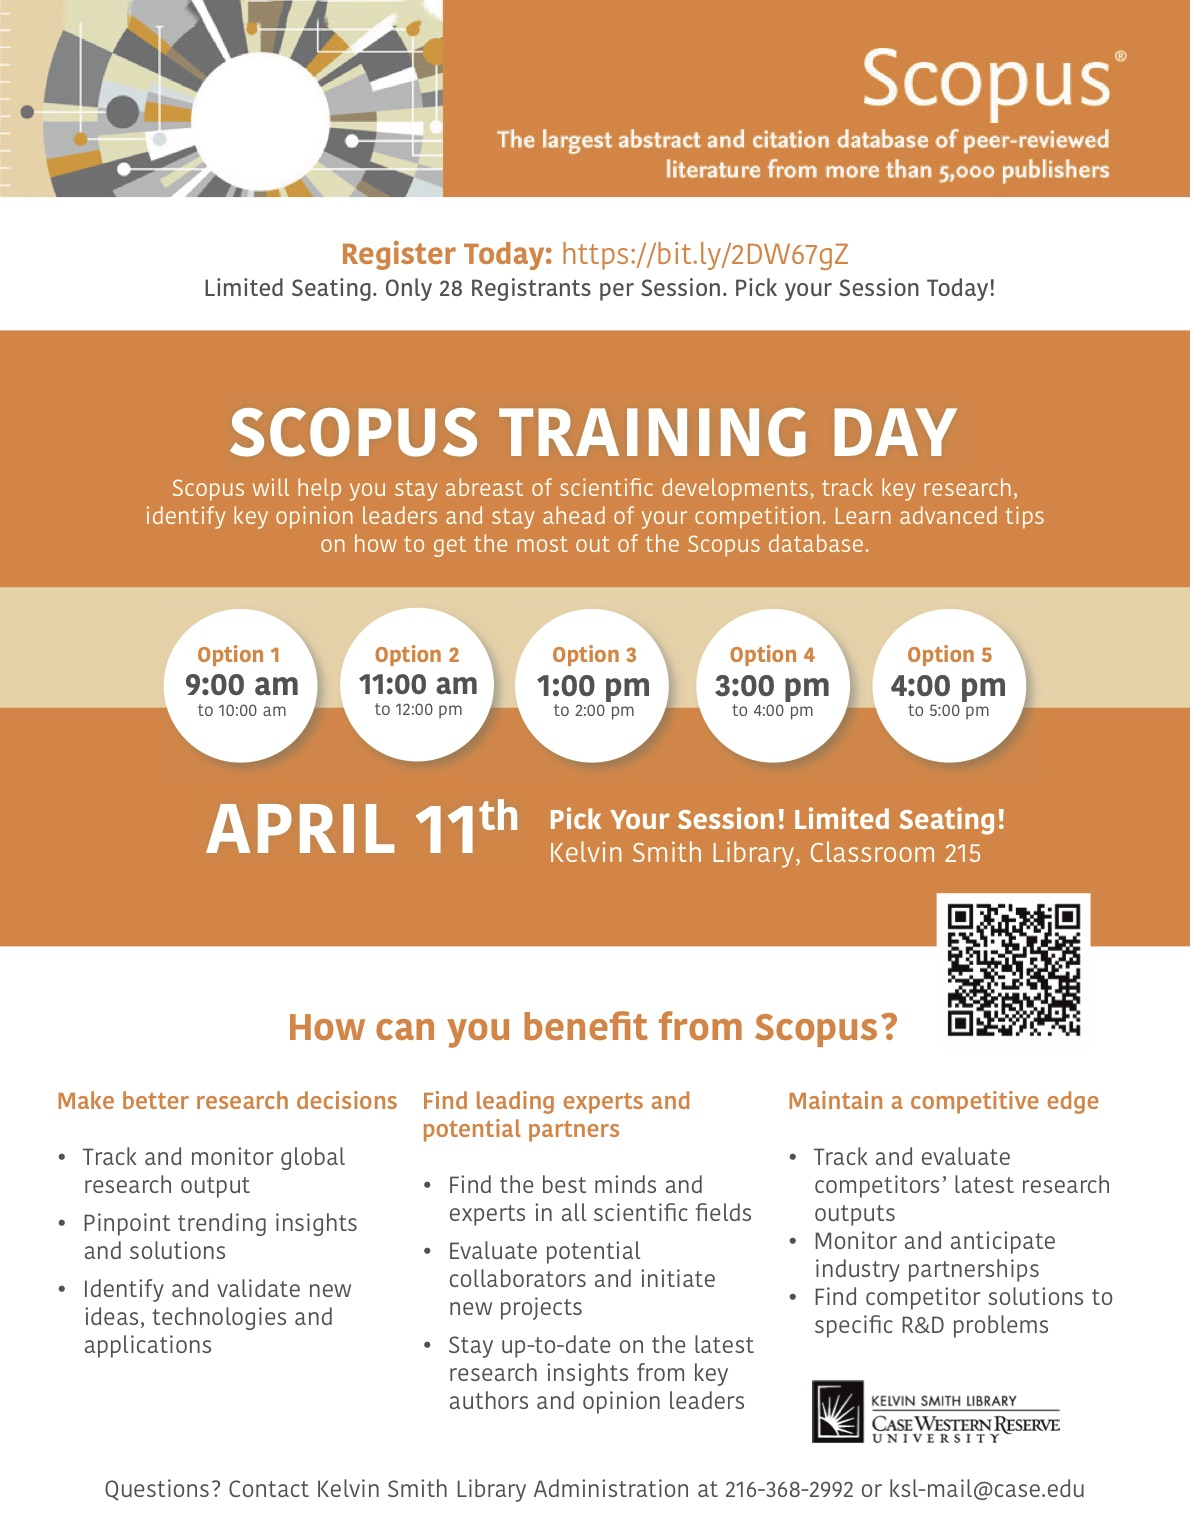 Scopus The largest abstract and citation database of peer-reviewed literature from more than 5,000 publishers Register Today: https://bit.ly/2DW67gZ Limited Seating. Only 28 Registrants per Session. Pick your Session Today! SCOPUS TRAINING DAY Scopus will help you stay abreast of scientific developments, track key research,  identify key opinion leaders and stay ahead of your competition. Learn advanced tips  on how to get the most out of the Scopus database. Option 1 9:00 am to 10:00 am Option 2 11:00 am to